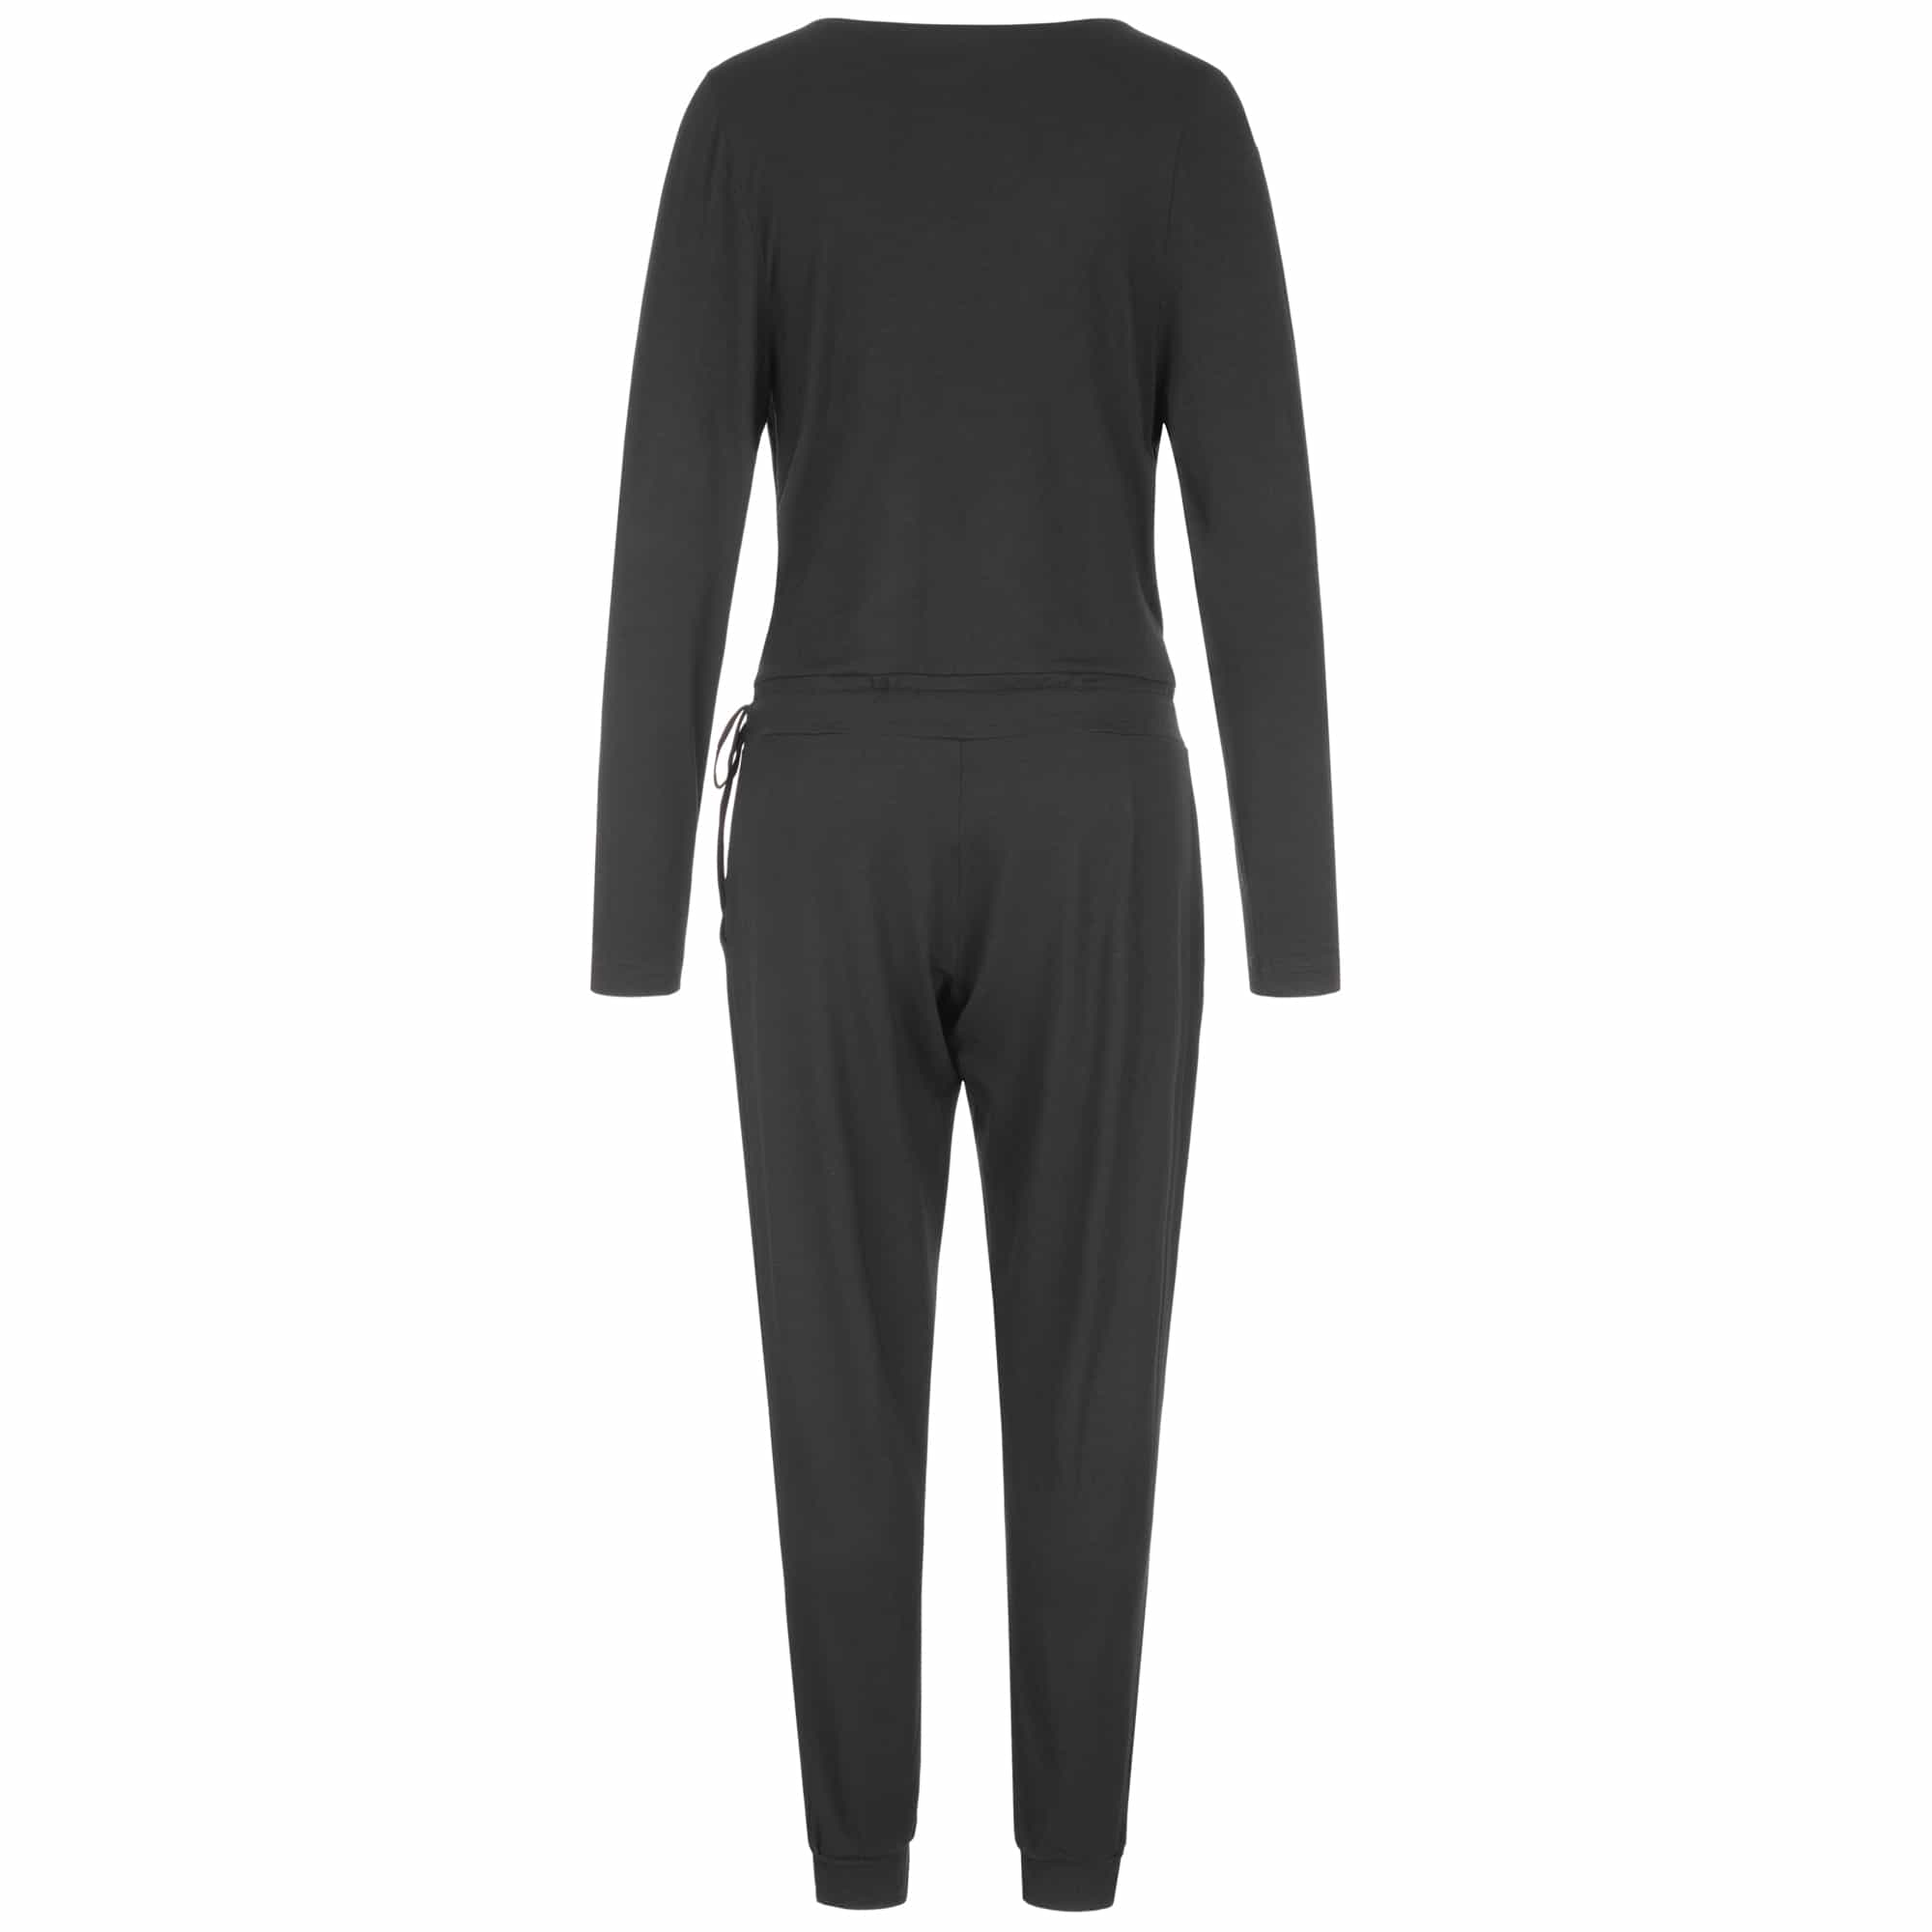 "Yoga Jumpsuit ""Kali"", charcoal - Supersoft long sleeve jumpsuit"